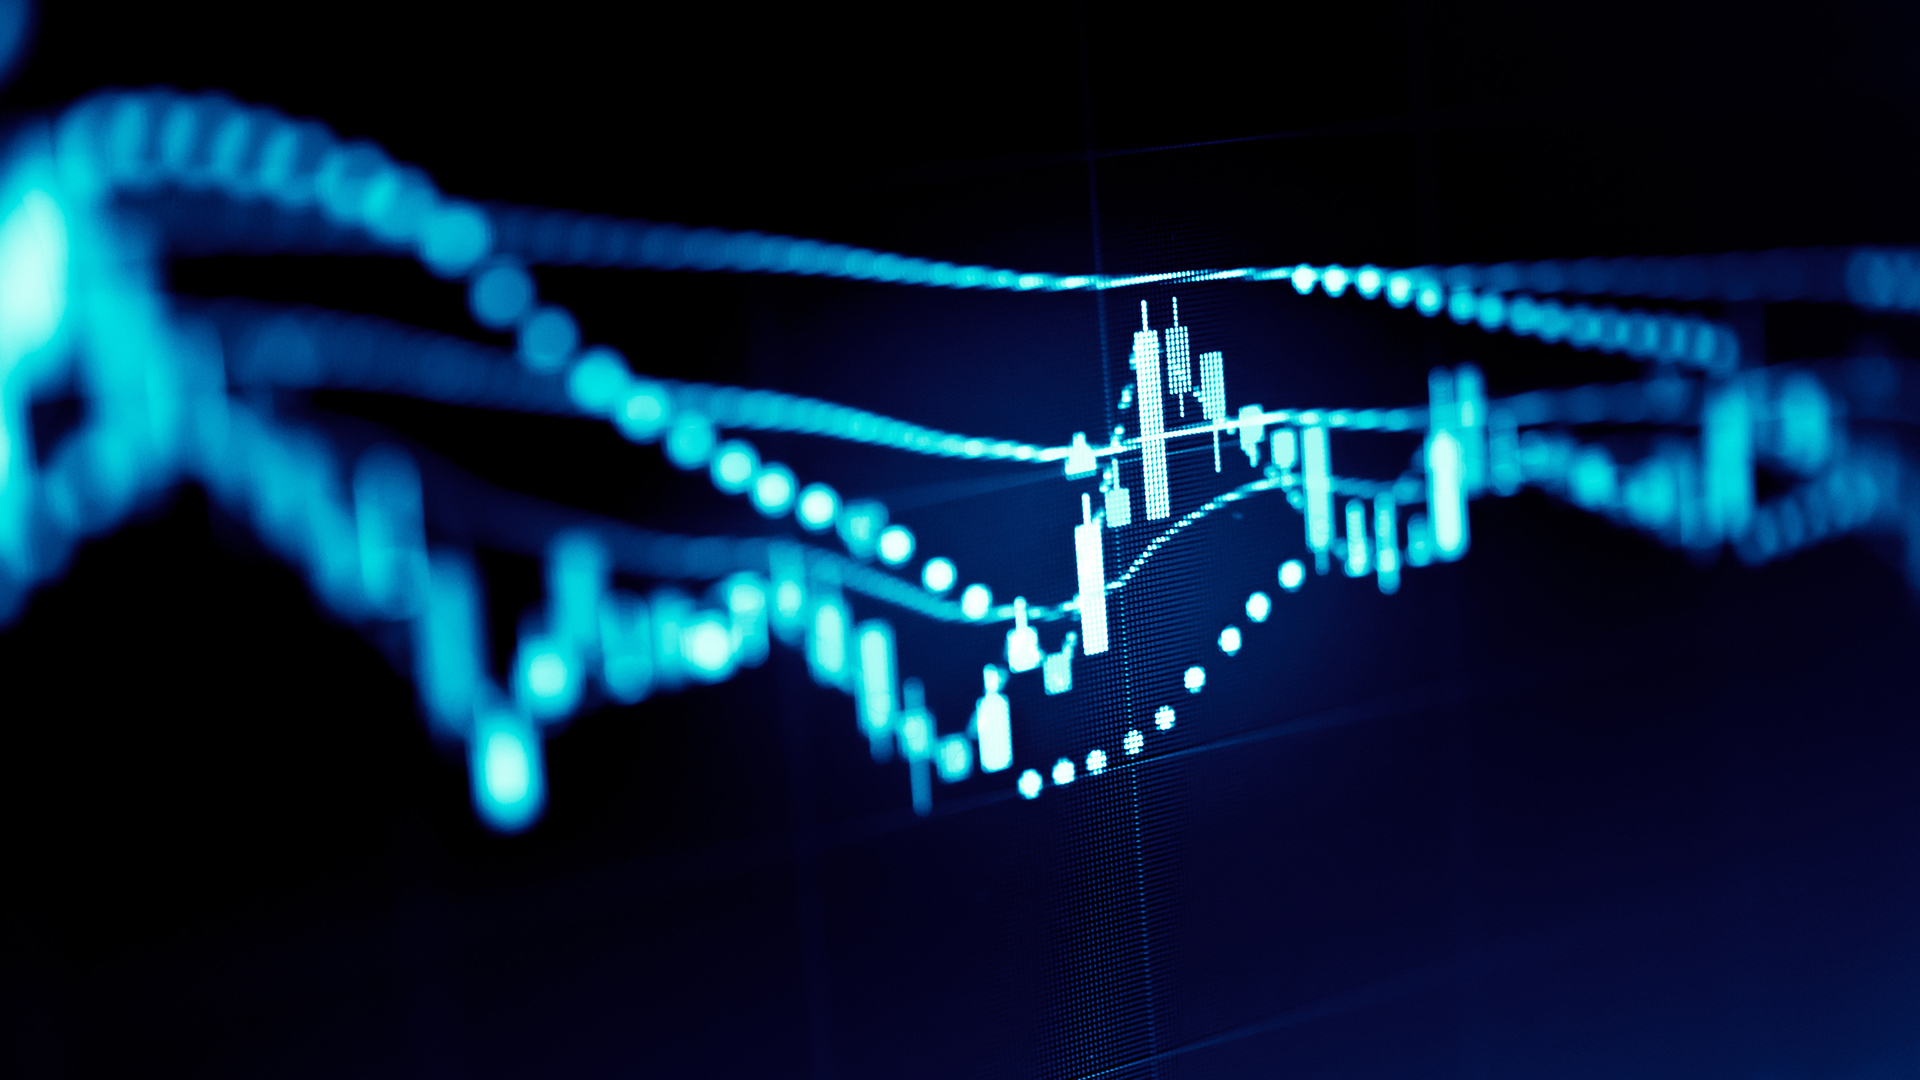 Investment-graph-financial-stocks